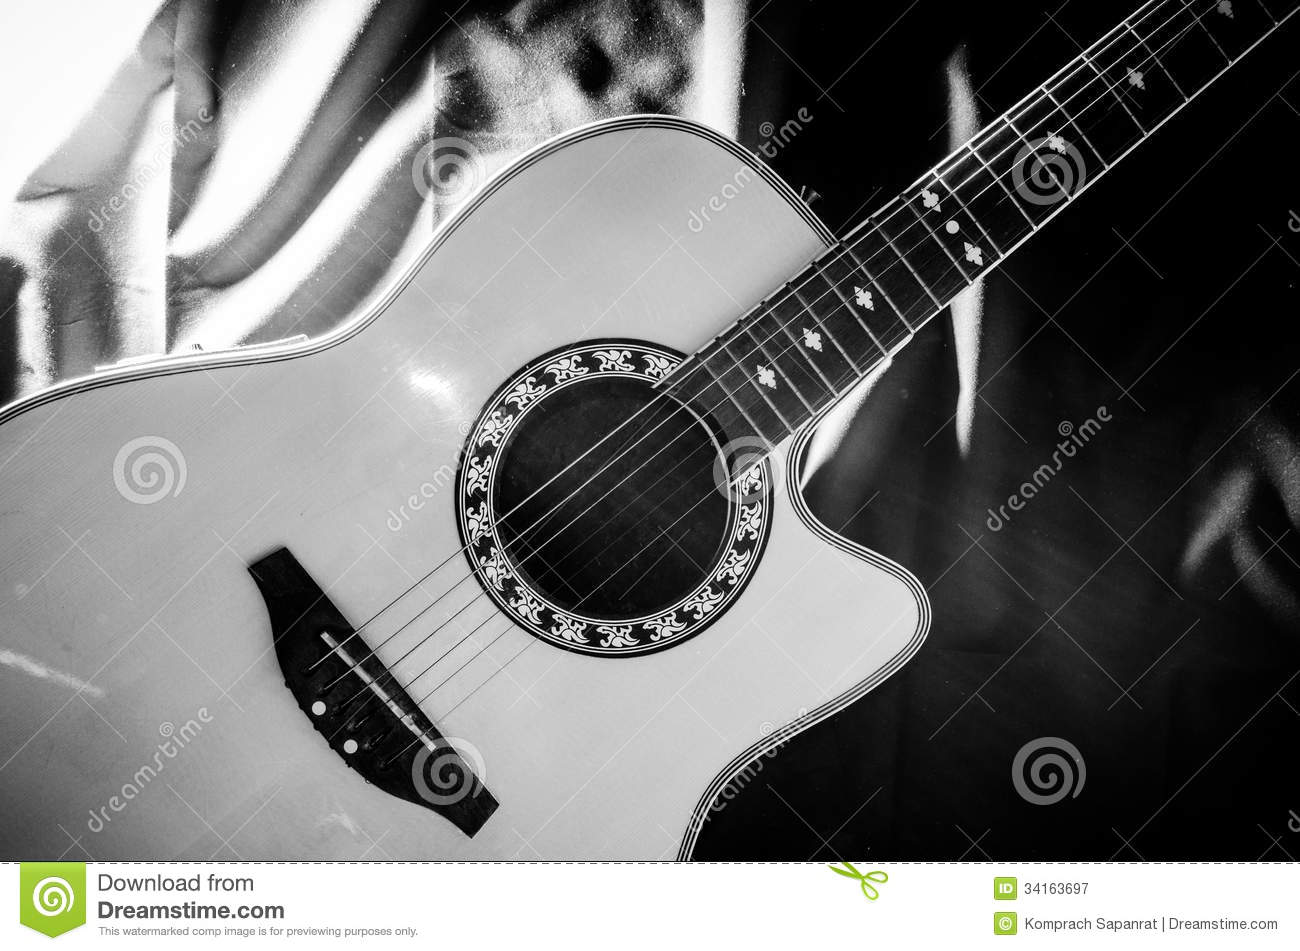 guitar black and white royalty free stock photography image 34163697. Black Bedroom Furniture Sets. Home Design Ideas